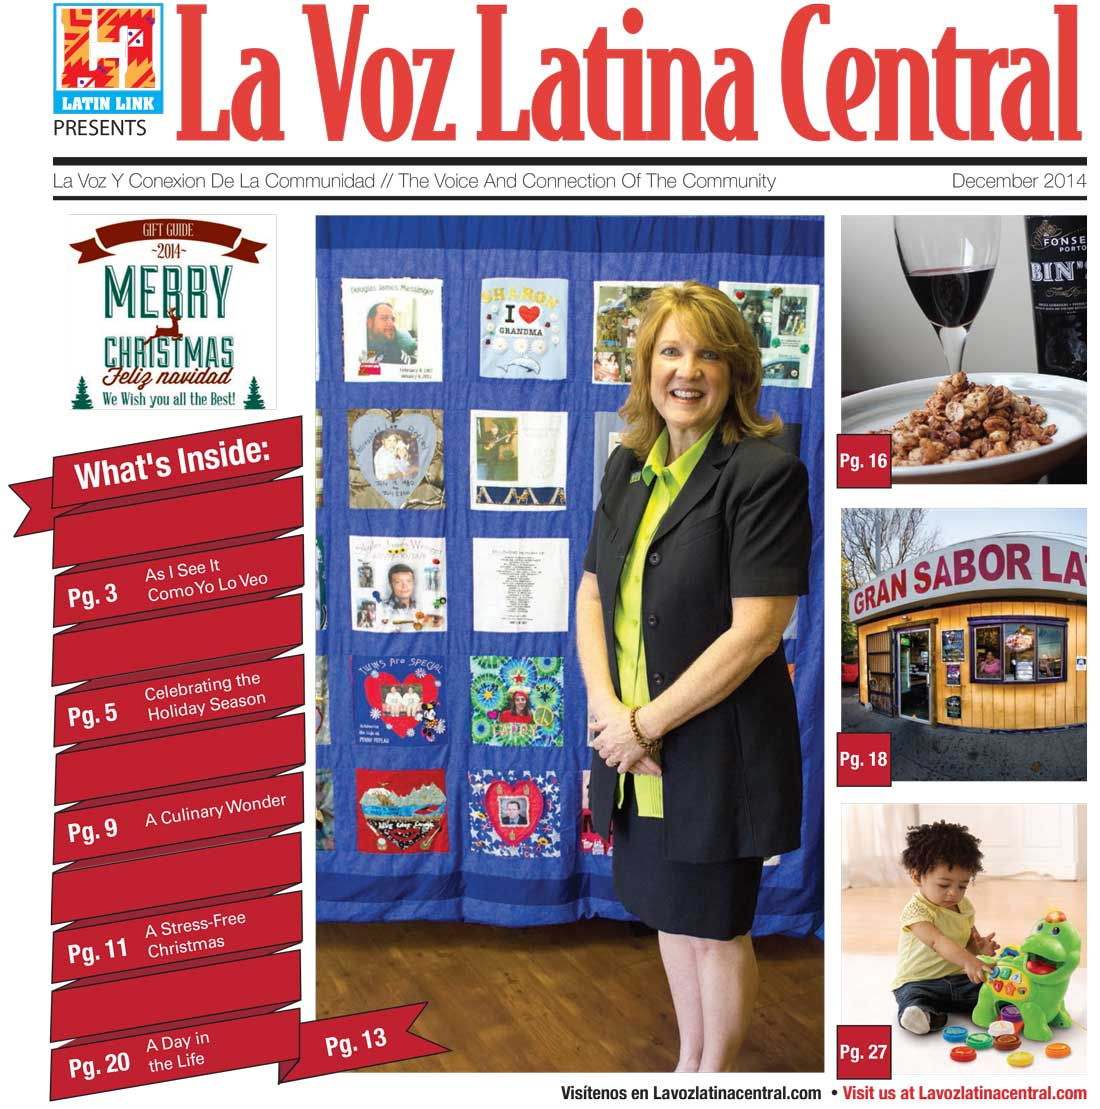 La Voz Latina Central December 2014 issue